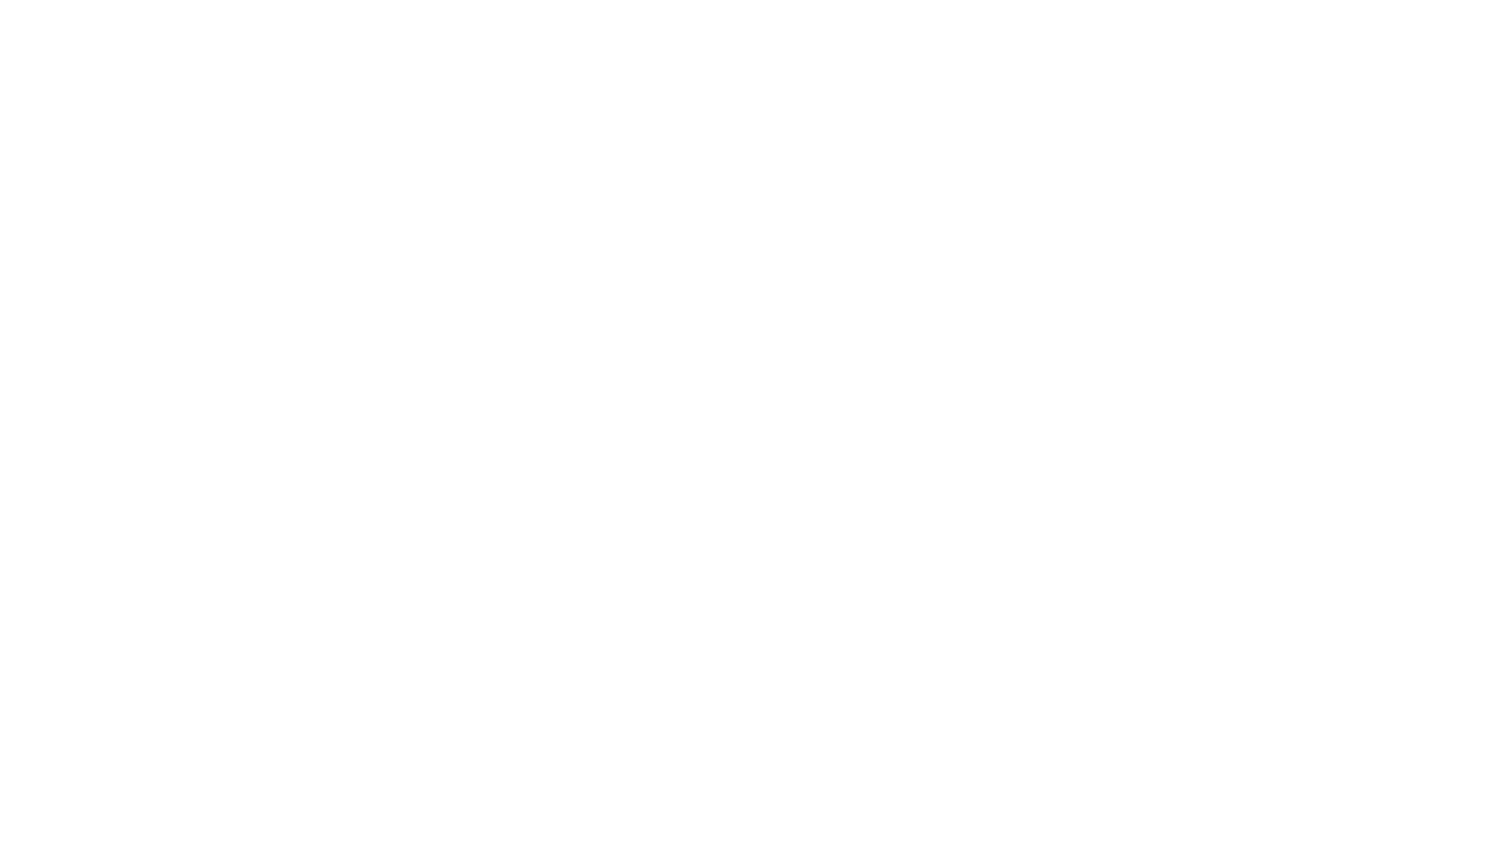 EPIC LLAMA - your next weekend adventure!